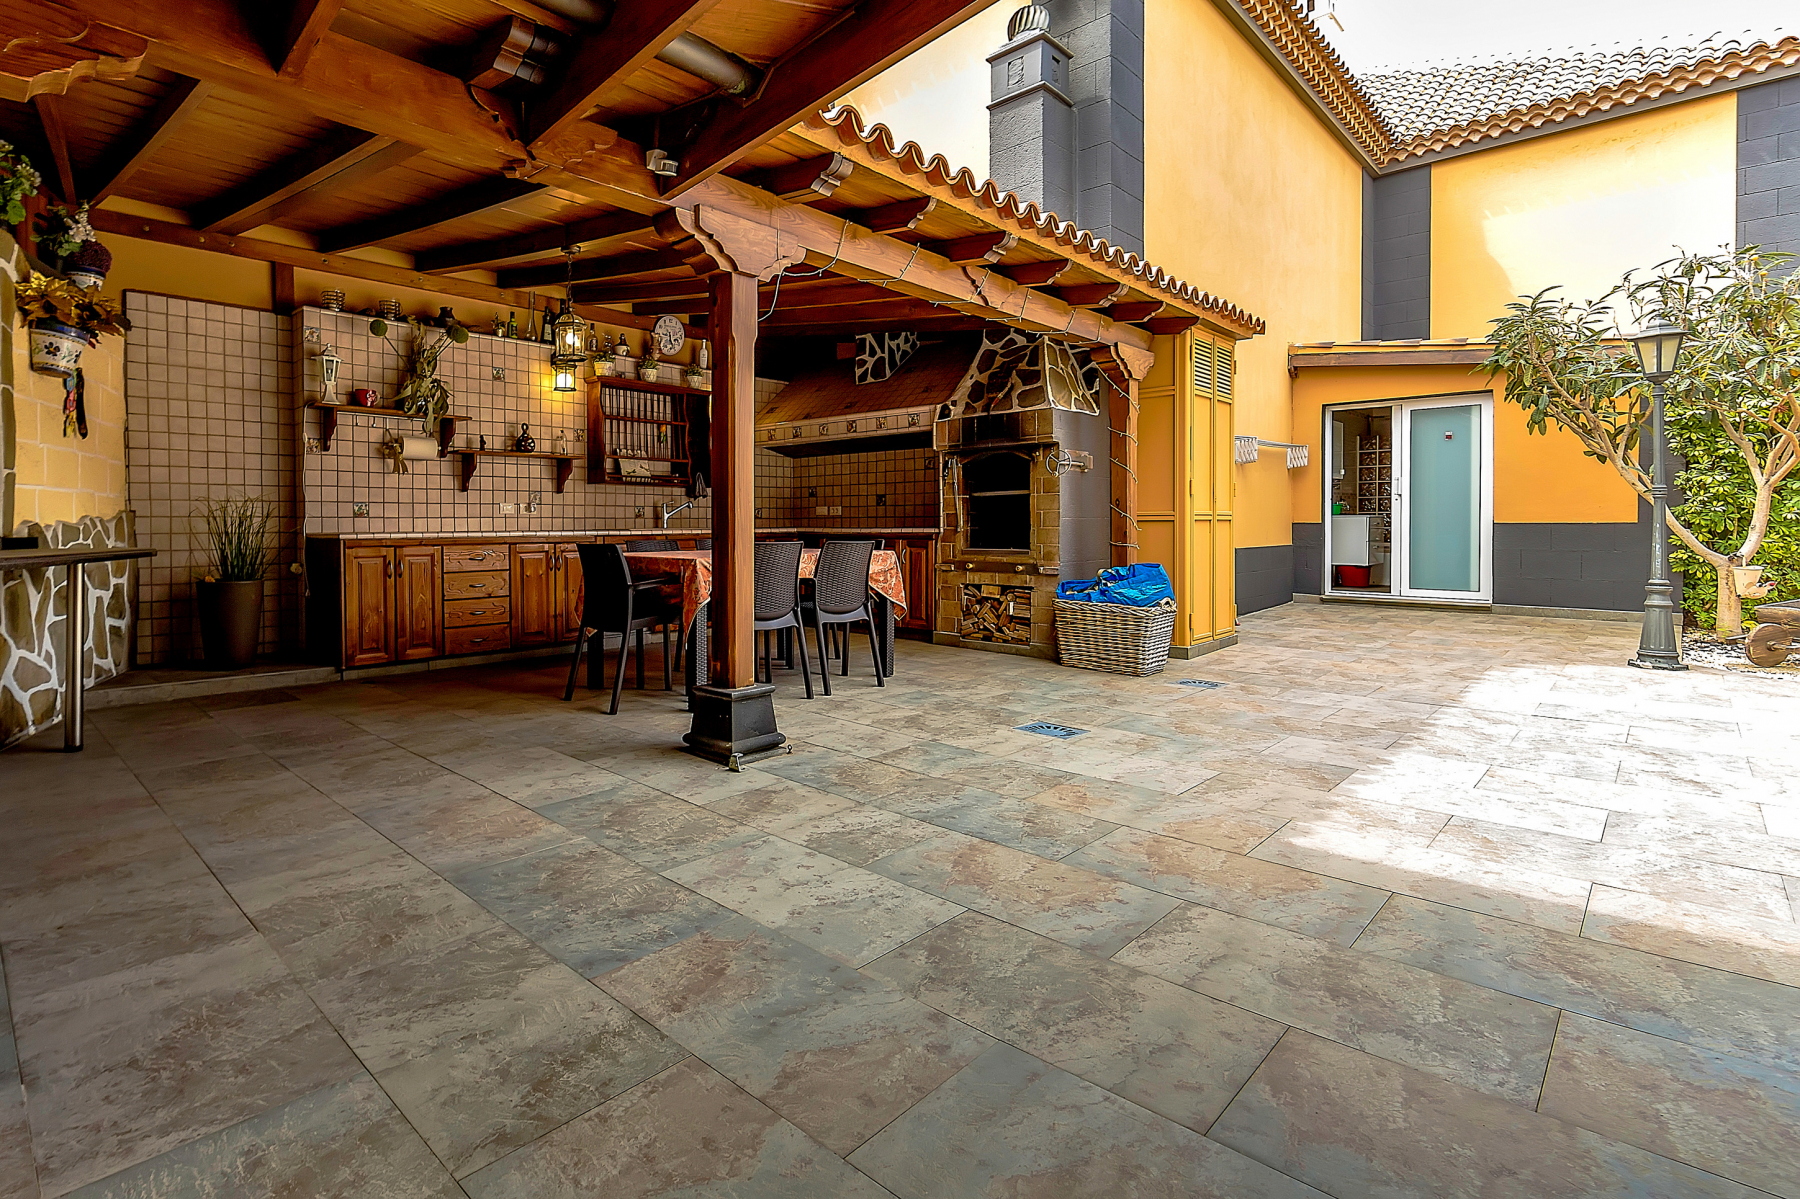 Properties for Sale in Tenerife, Canary Islands, Spain | SylkWayStar Real Estate. 4 Bedroom Townhouse LA DUQUESA . Image-25260